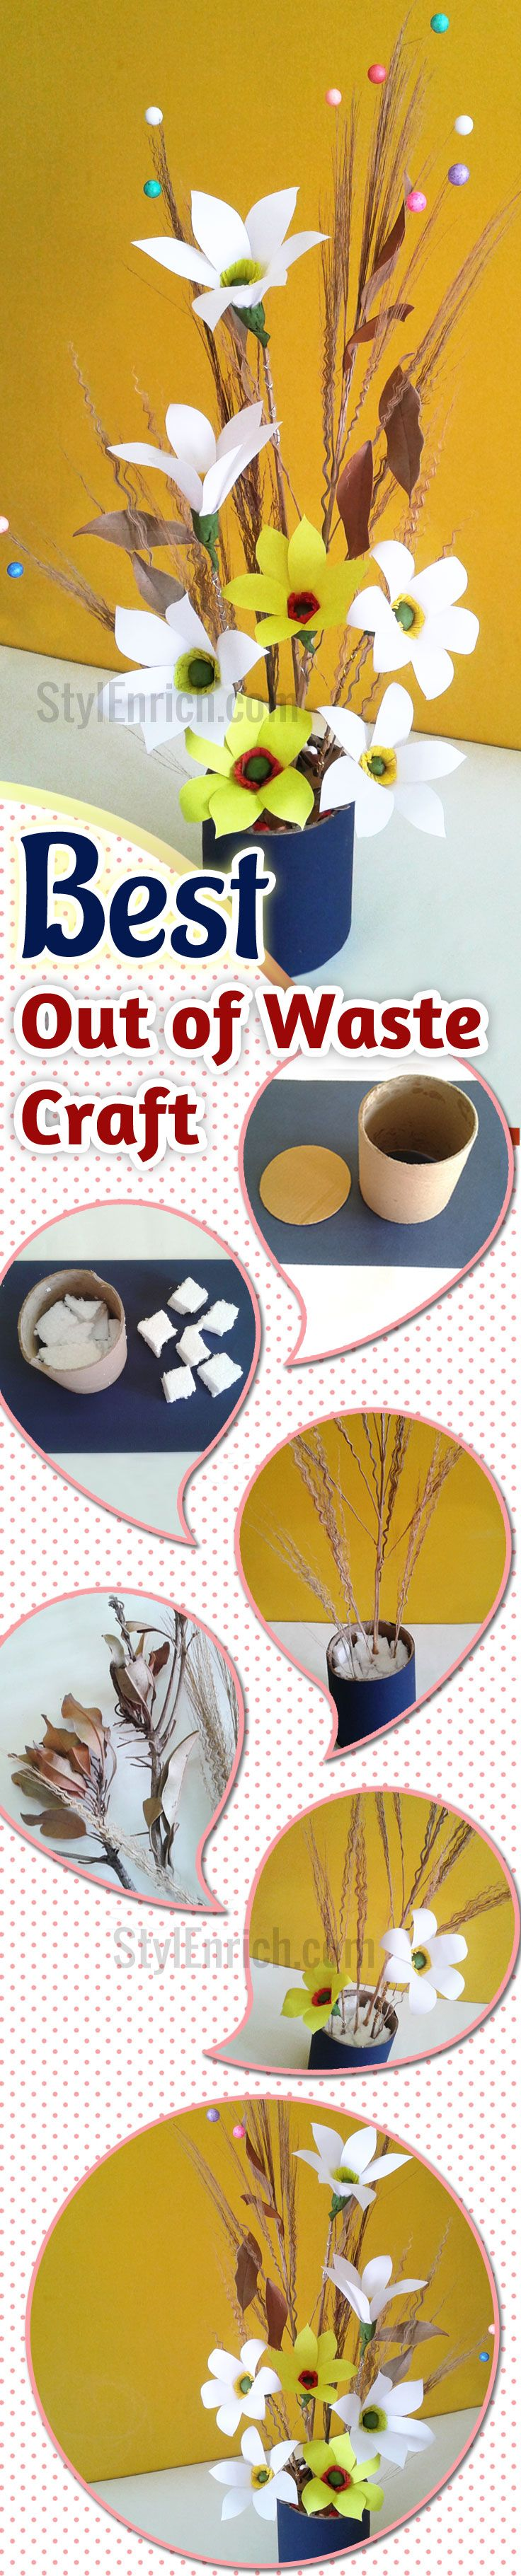 49 best images about best out of waste on pinterest for Handicraft from waste things